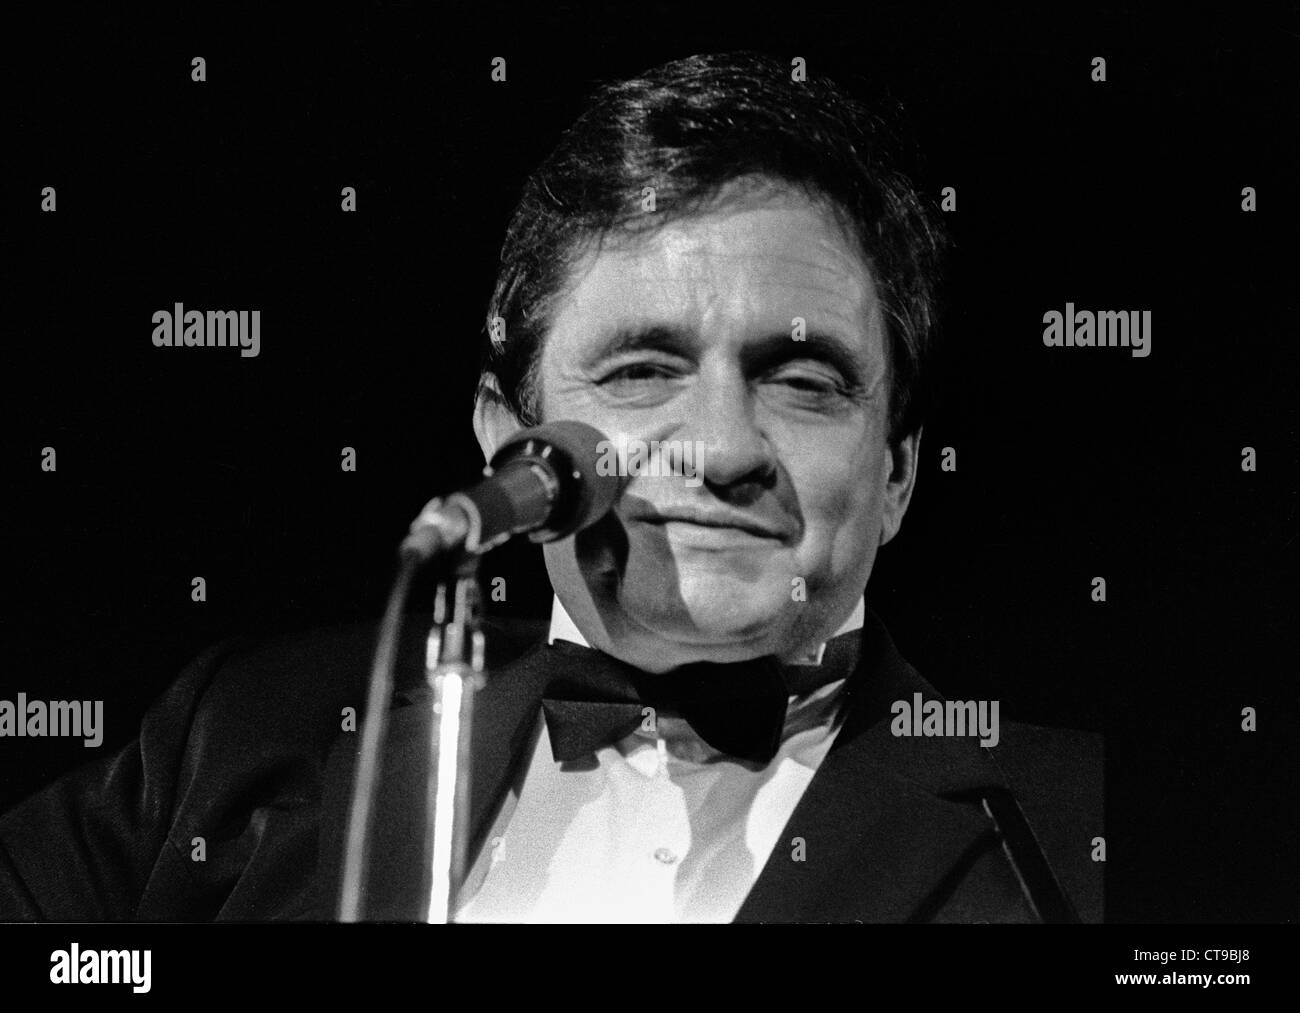 Johnny Cash Stock Photos & Johnny Cash Stock Images - Alamy